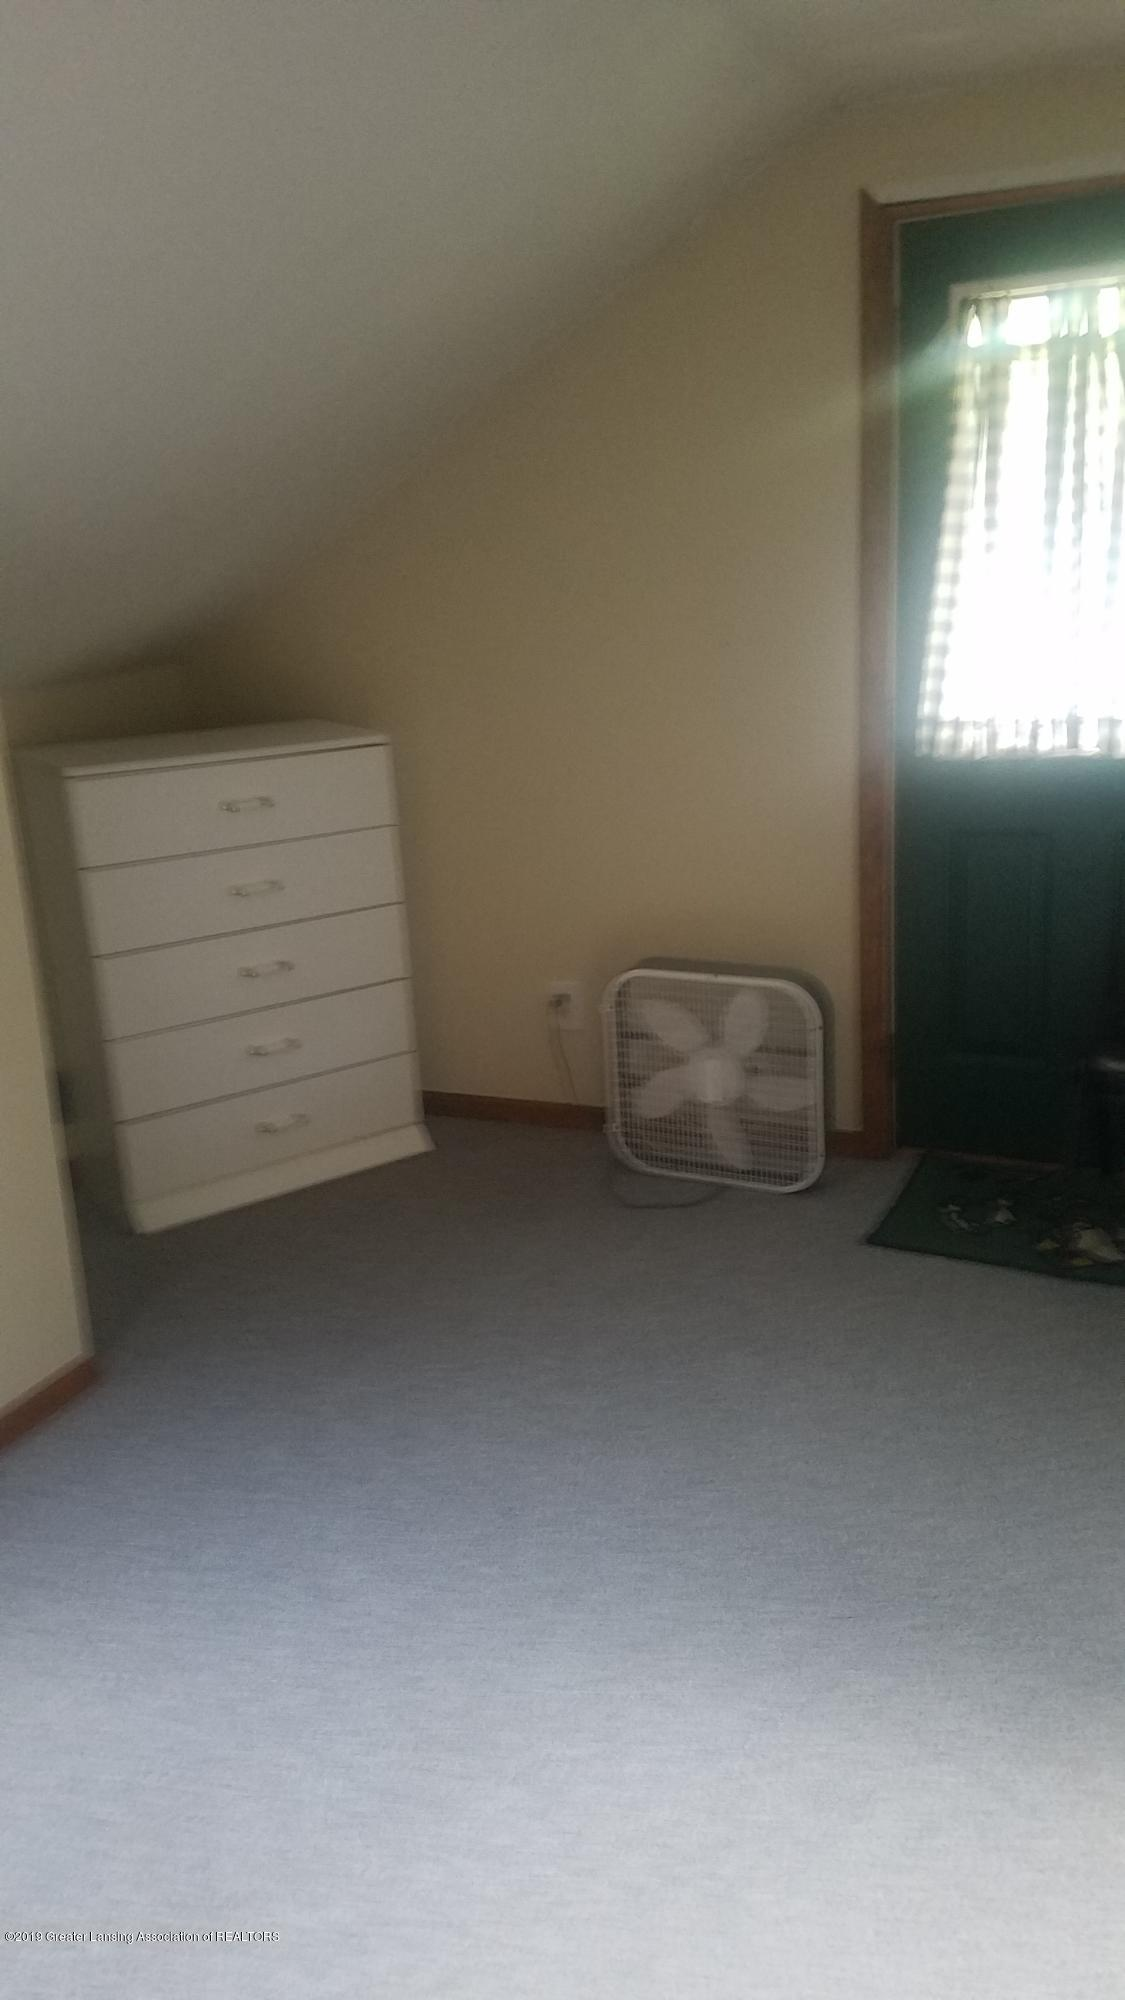 9642 Marshall Rd - BEDROOM - 21